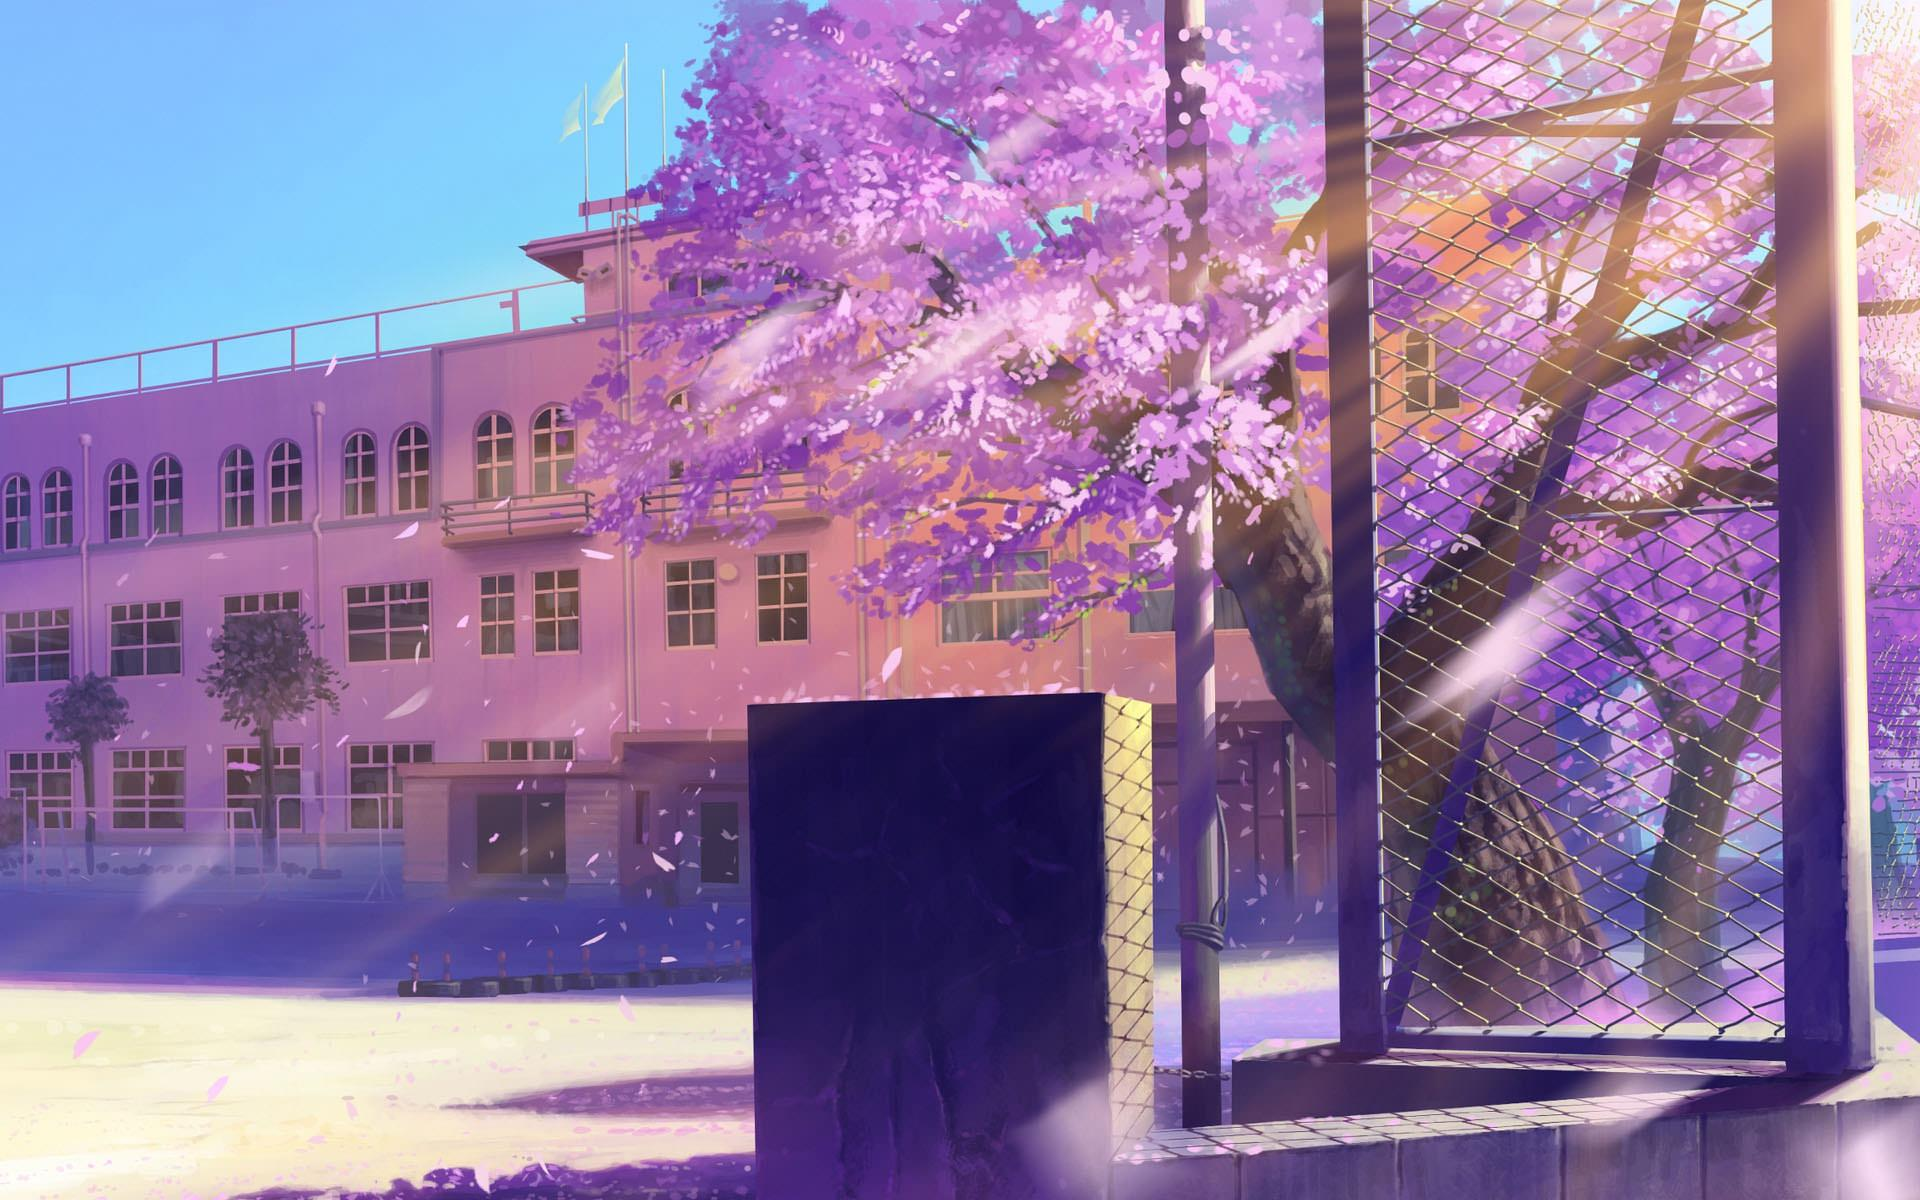 Anime School Architecture Hd Wallpaper Hd Latest Wallpapers